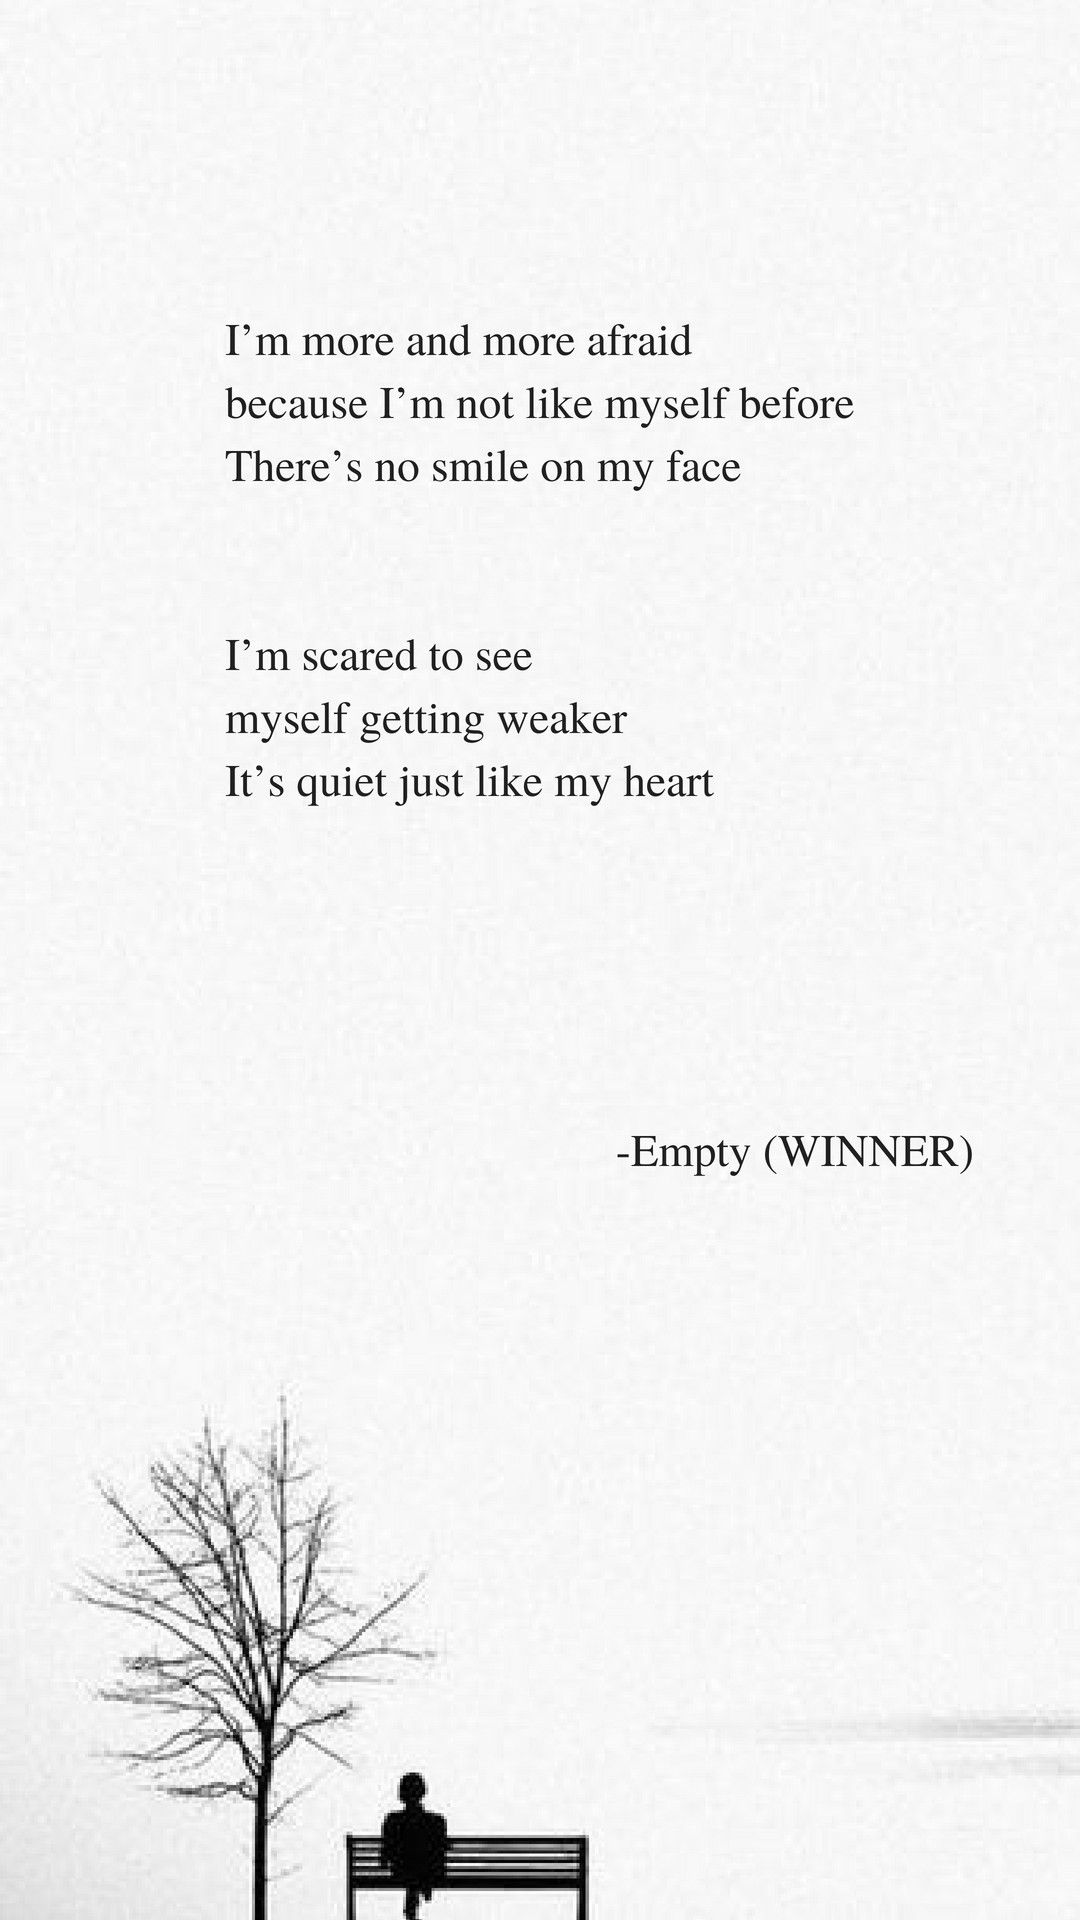 empty by winner lyrics